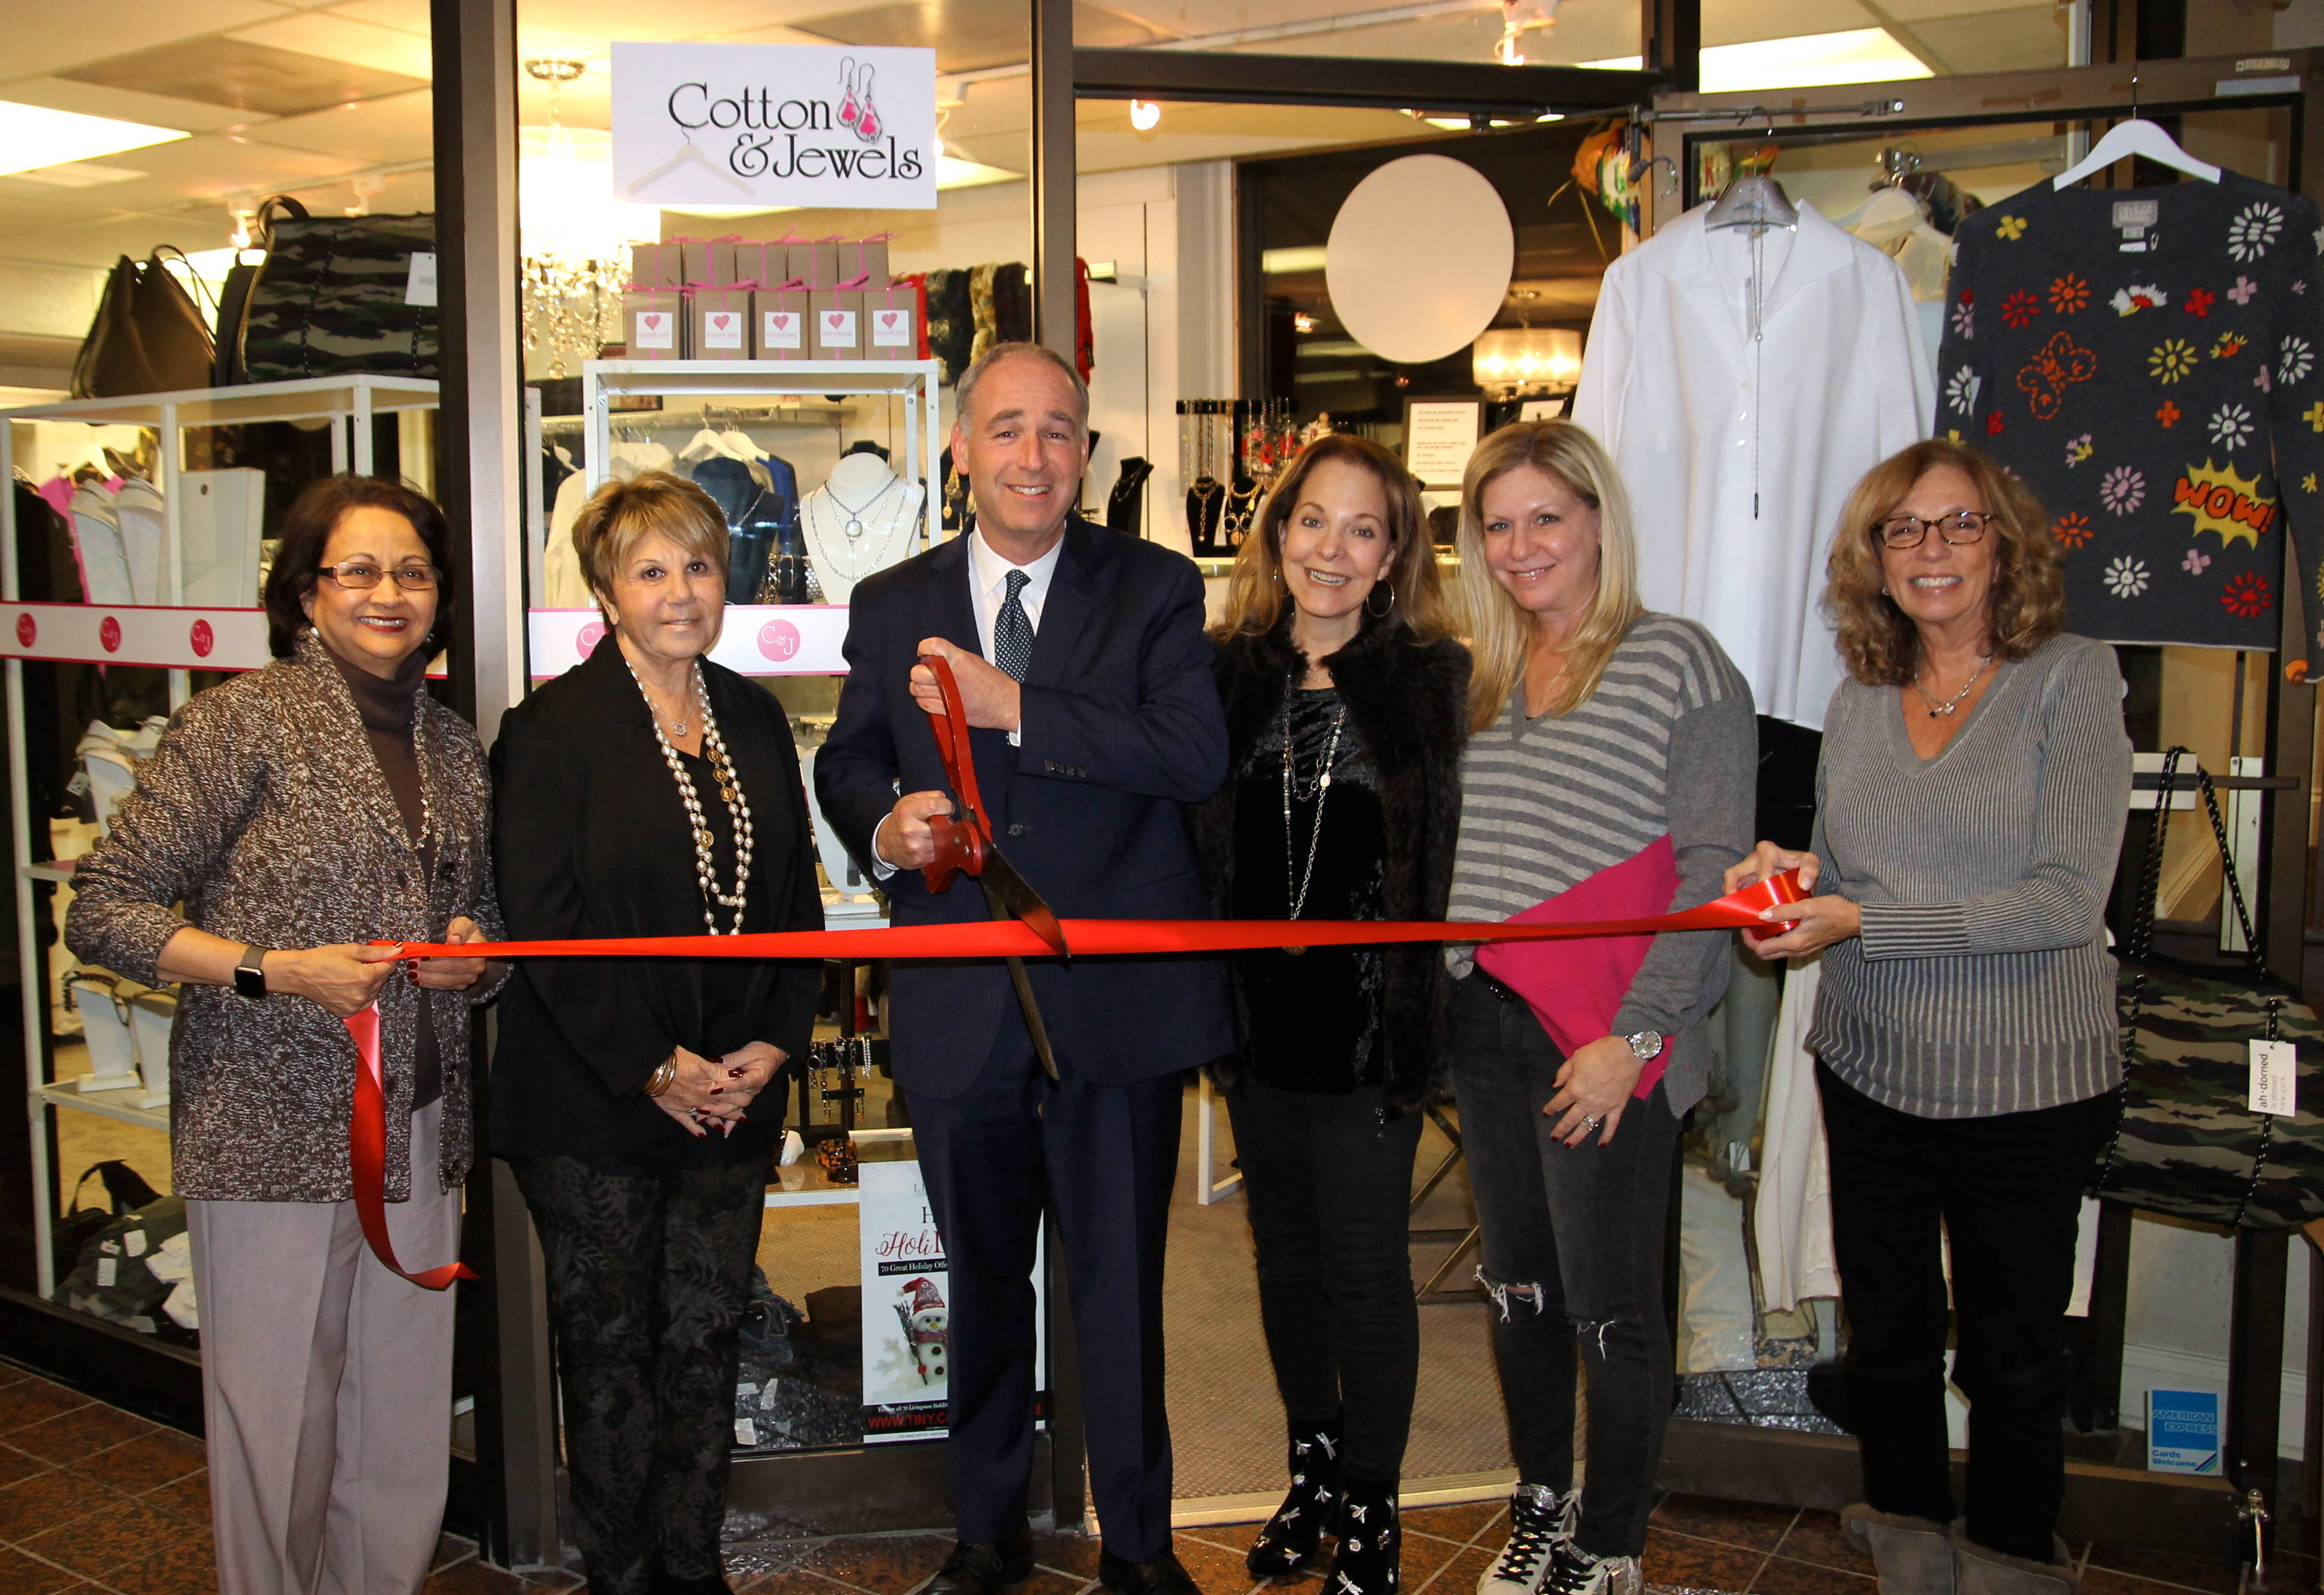 Mini Owners Lounge >> West Orange and Verona Residents Team Up to Open Cotton & Jewels in Livingston - TAPinto